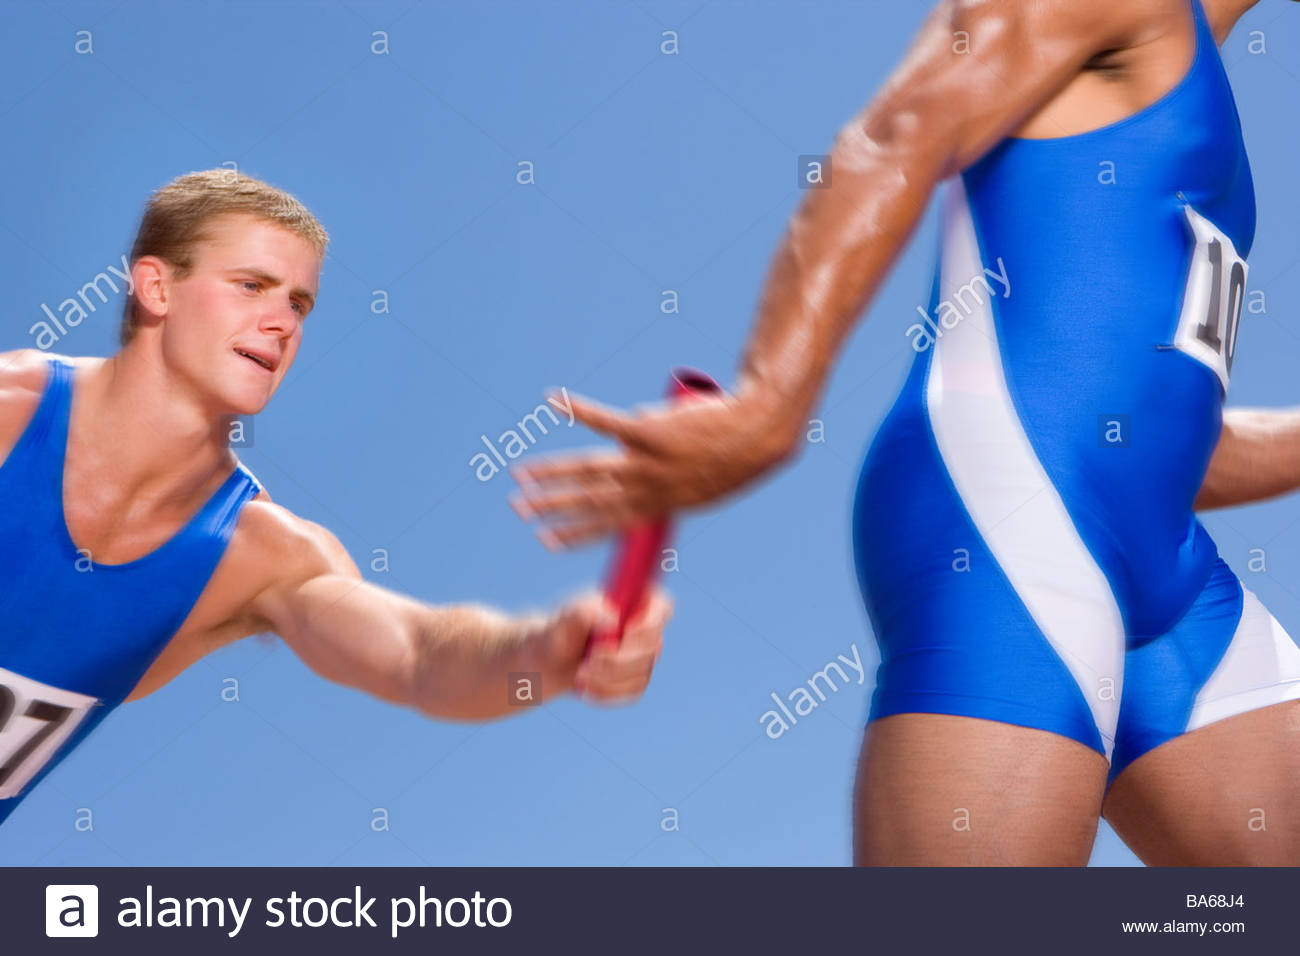 Young male athletes passing relay race baton Stock Photo, Royalty ...